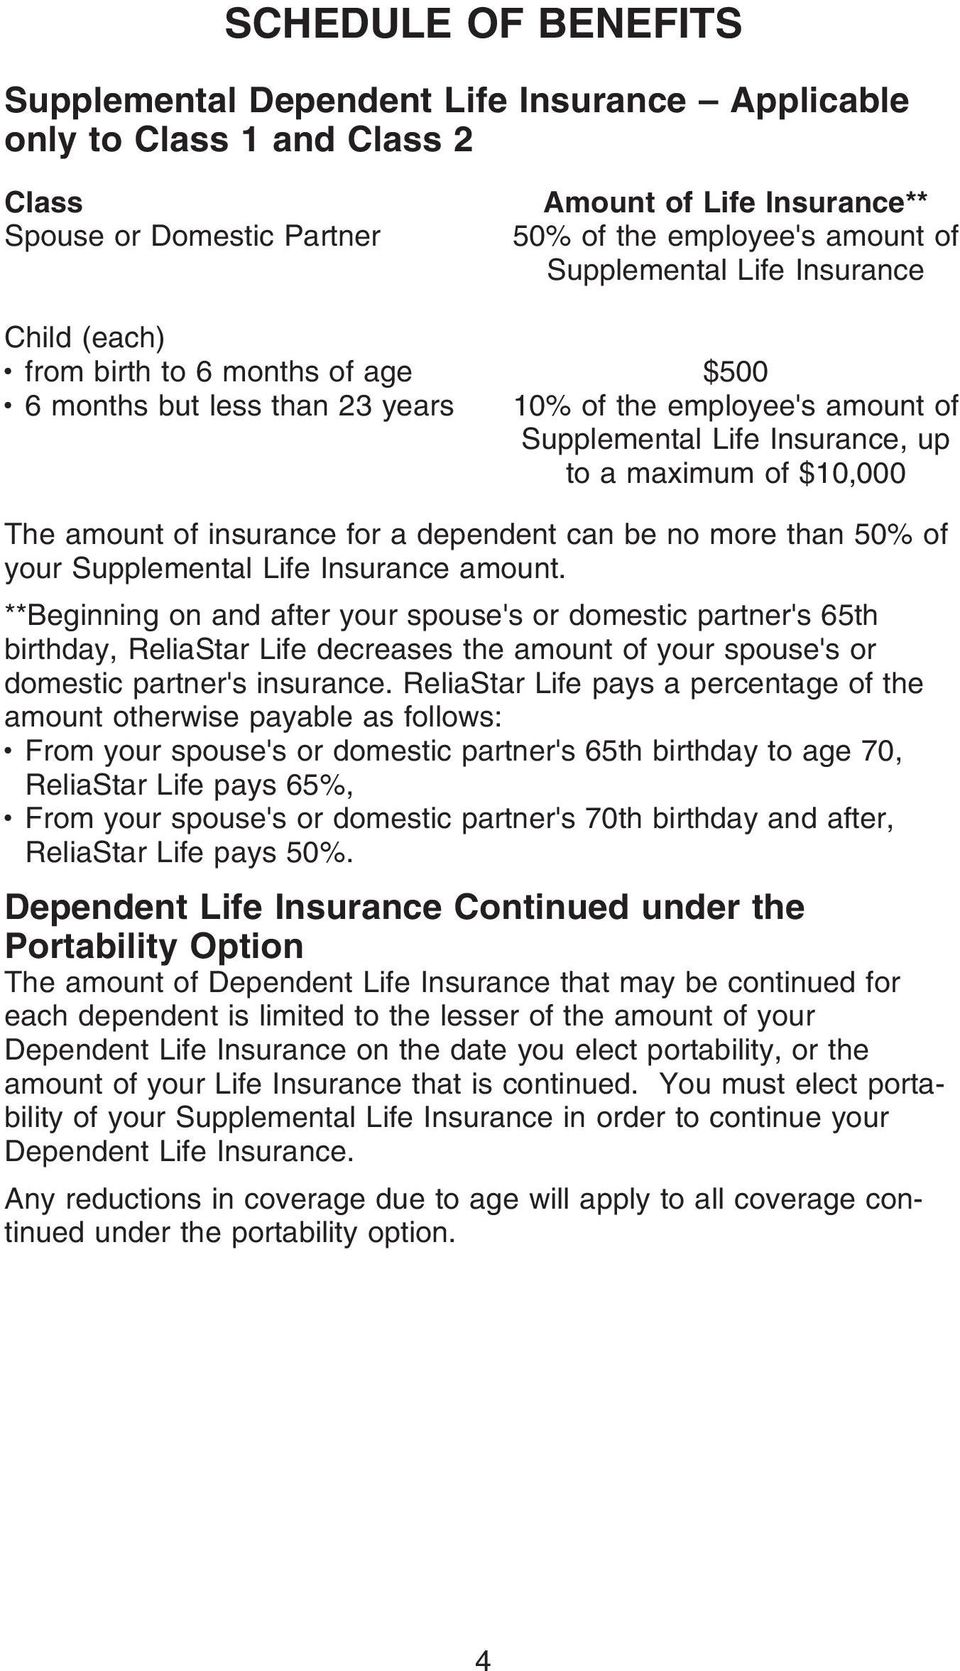 amount of insurance for a dependent can be no more than 50% of your Supplemental Life Insurance amount.